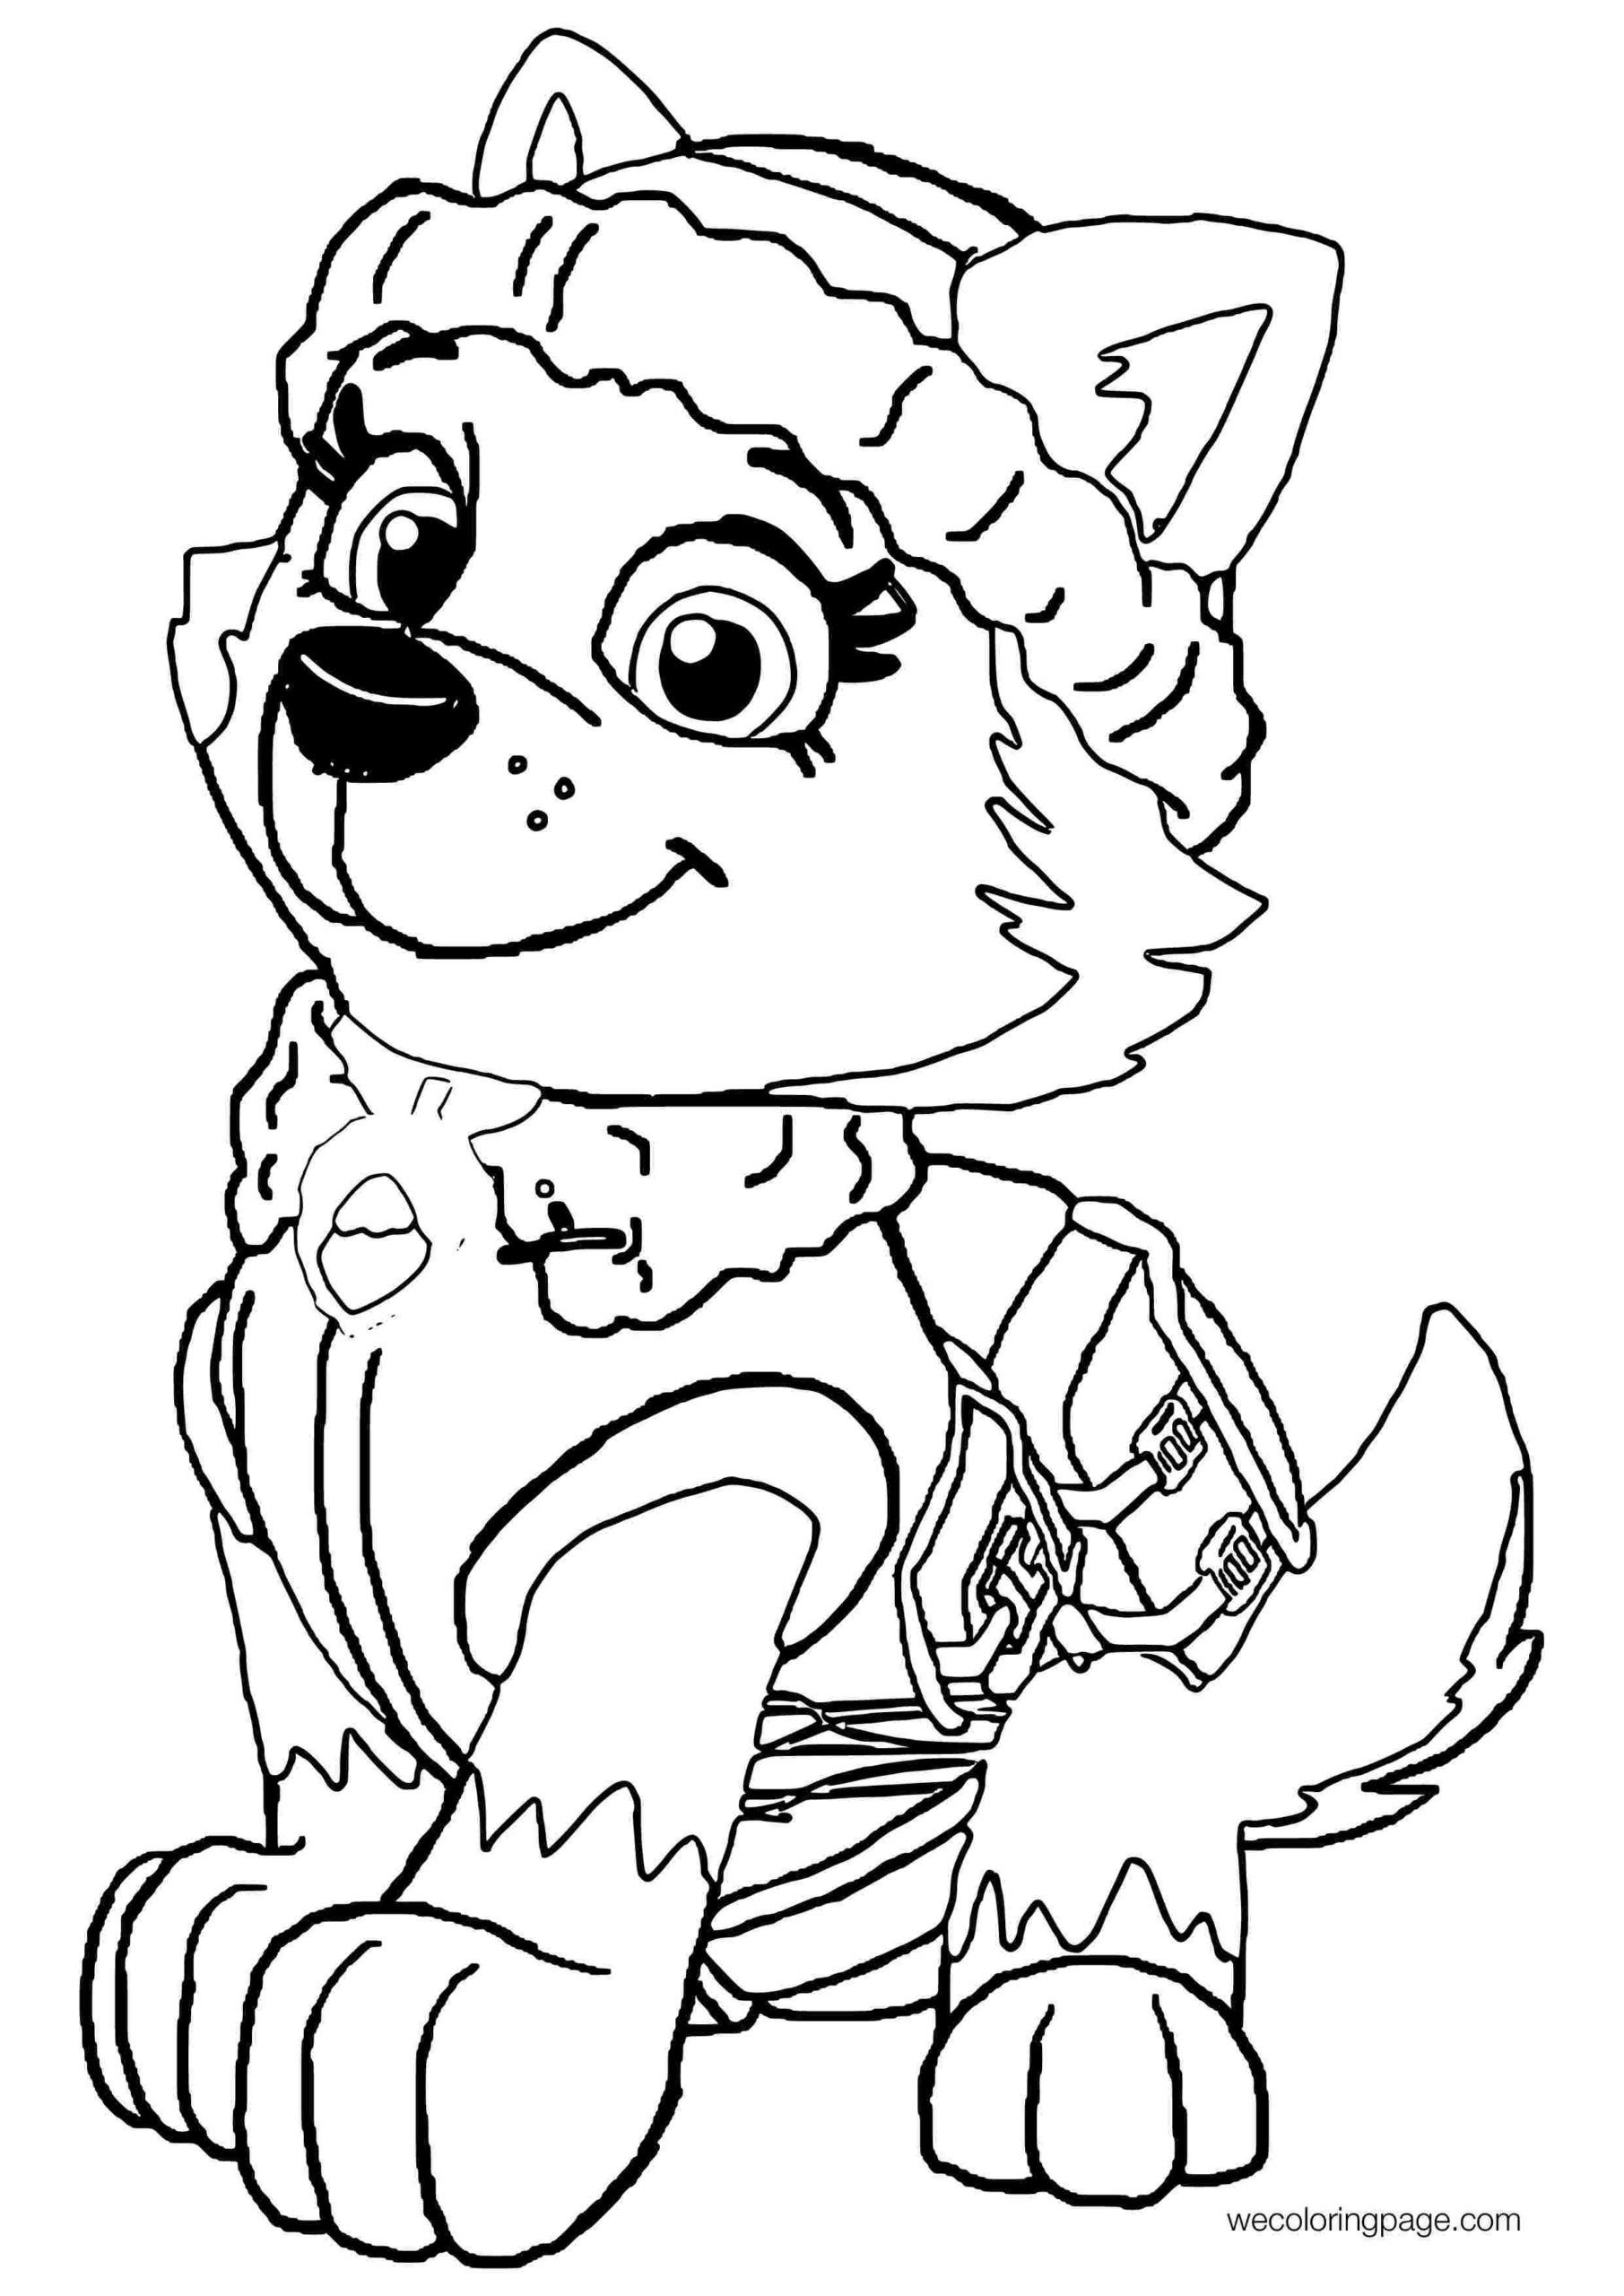 everest paw patrol coloring everest from paw patrol free colouring pages patrol paw coloring everest